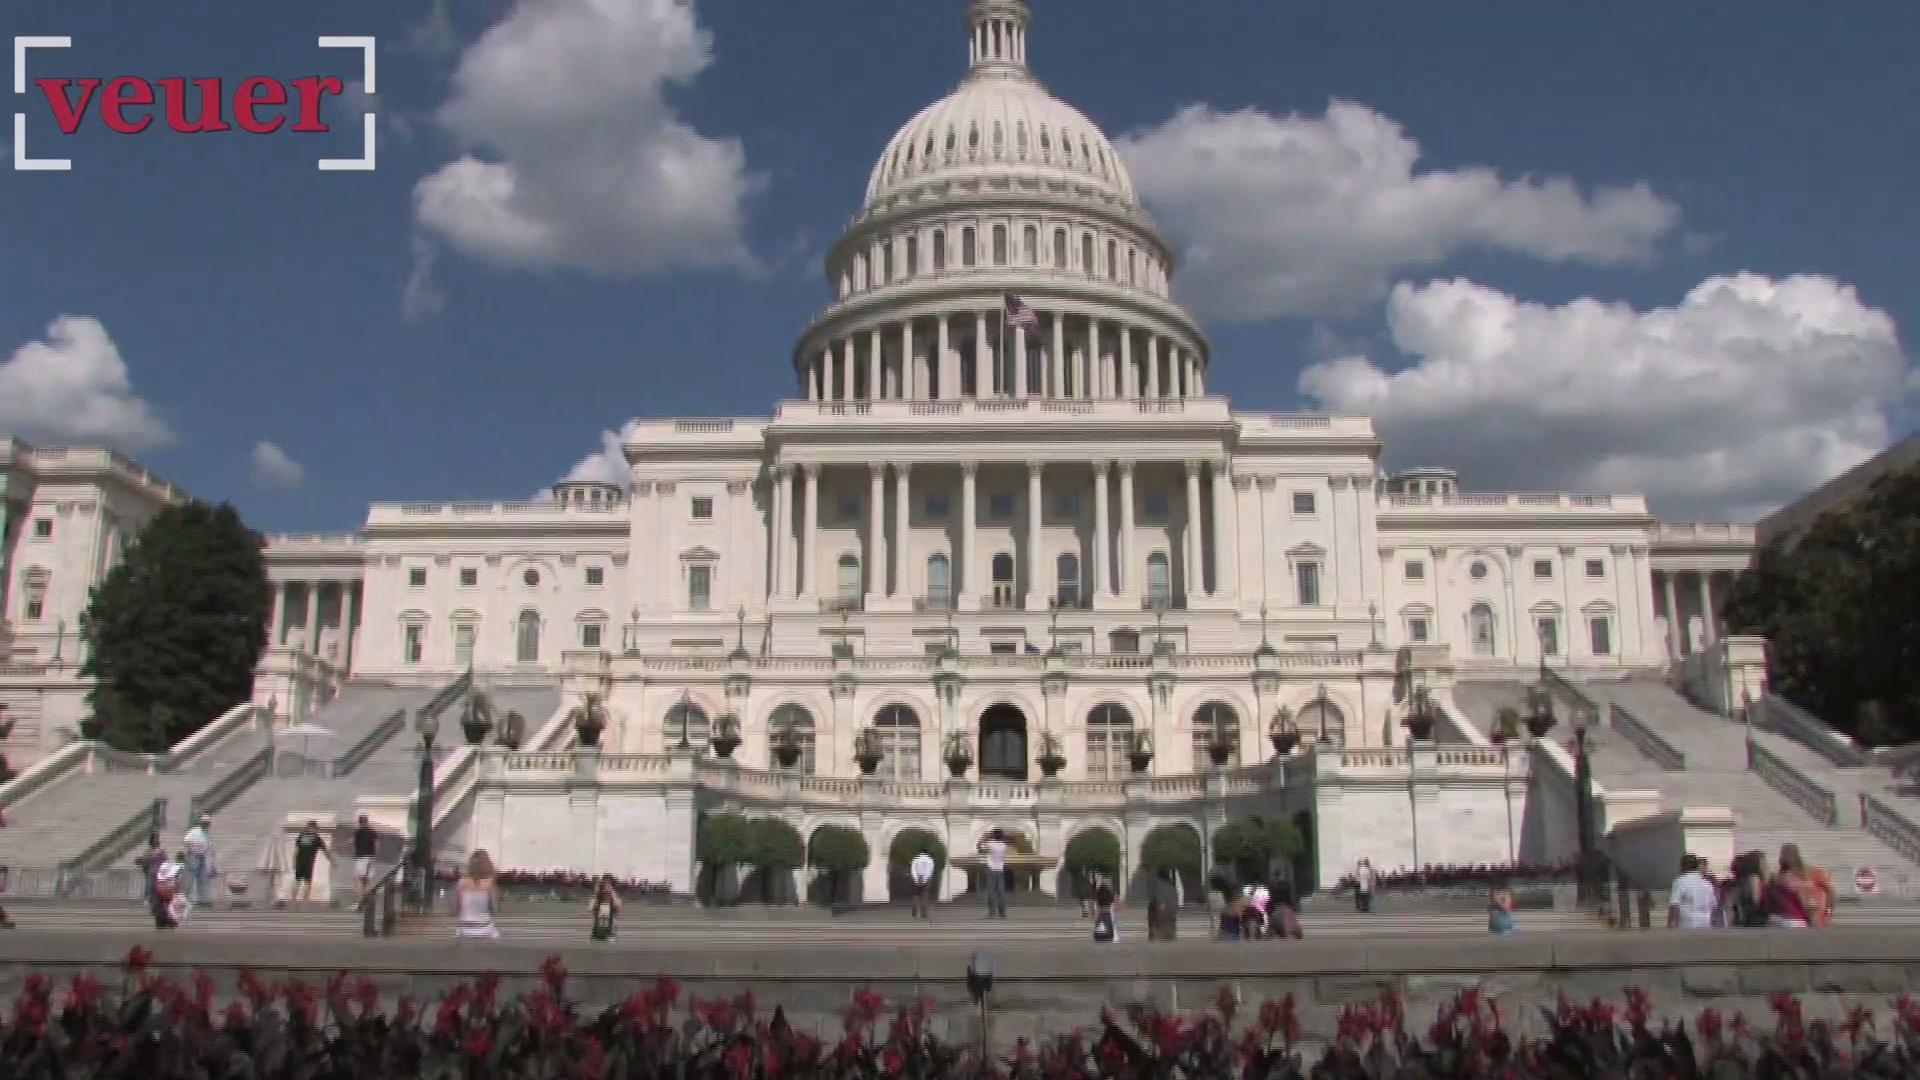 Political Advocacy Group's Message On Obamacare, Repeal and Replace